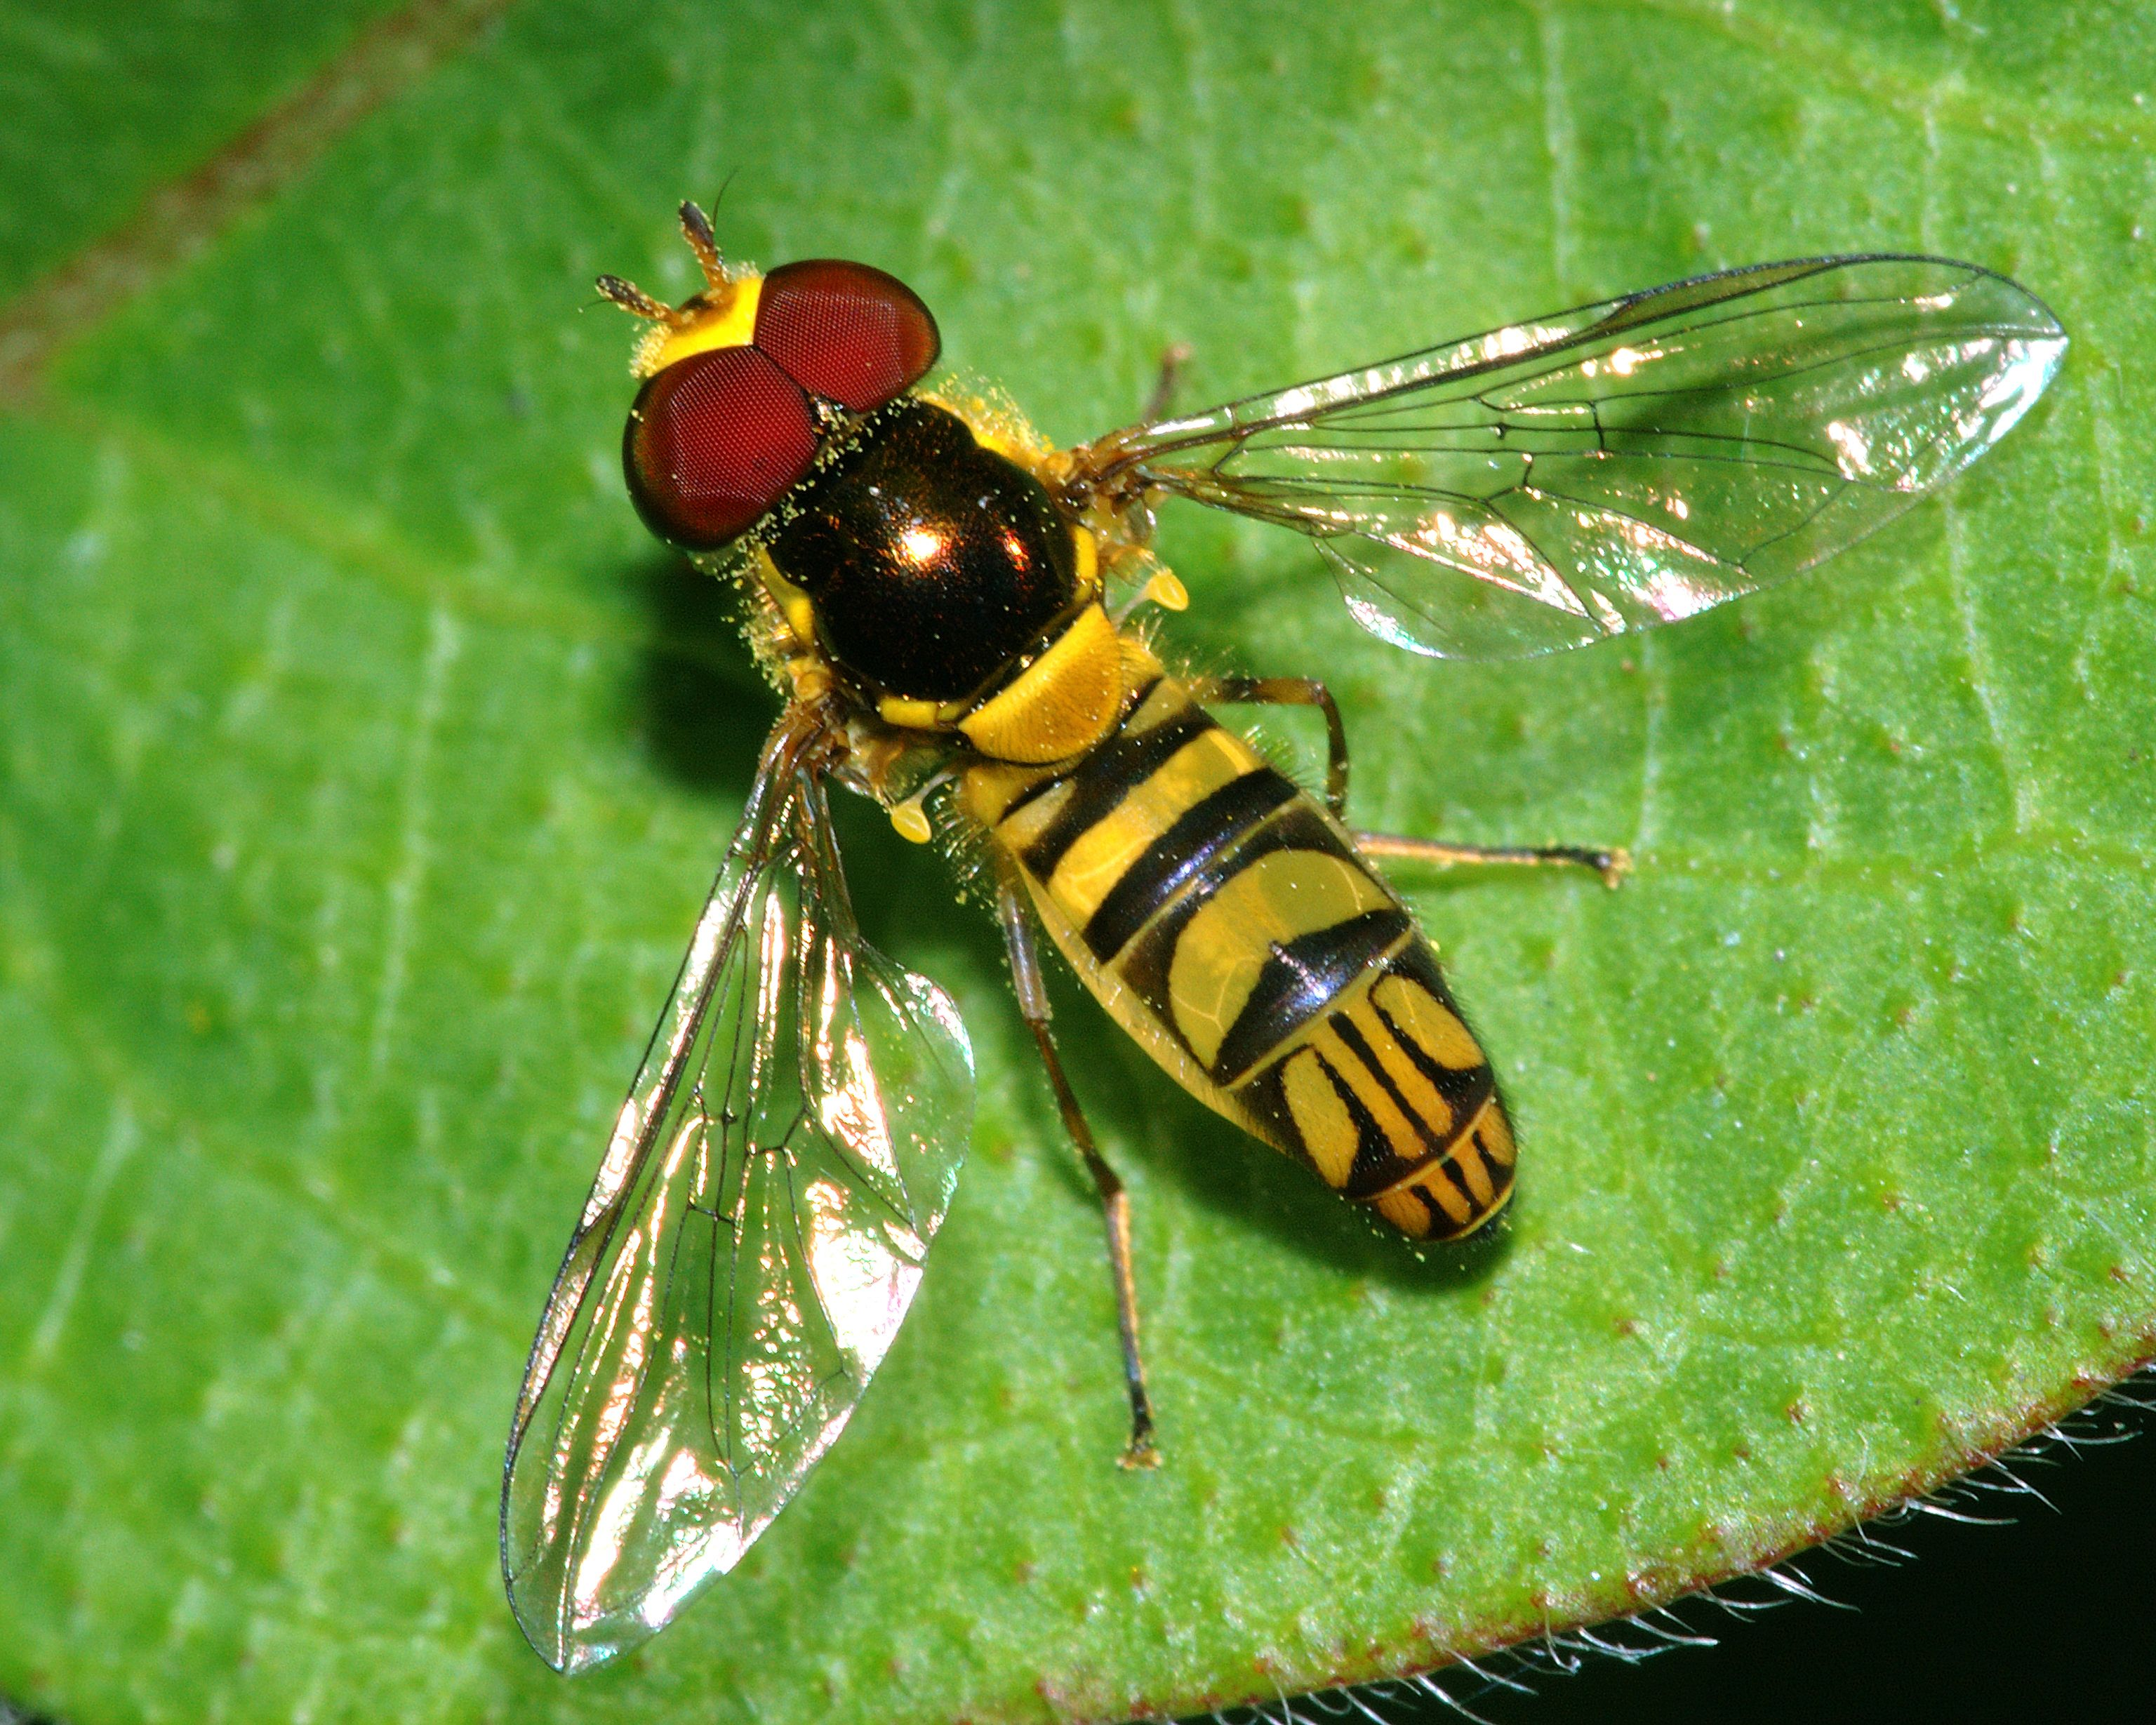 Syrphidae(hover flies): prey on plant pests(aphids, thrips